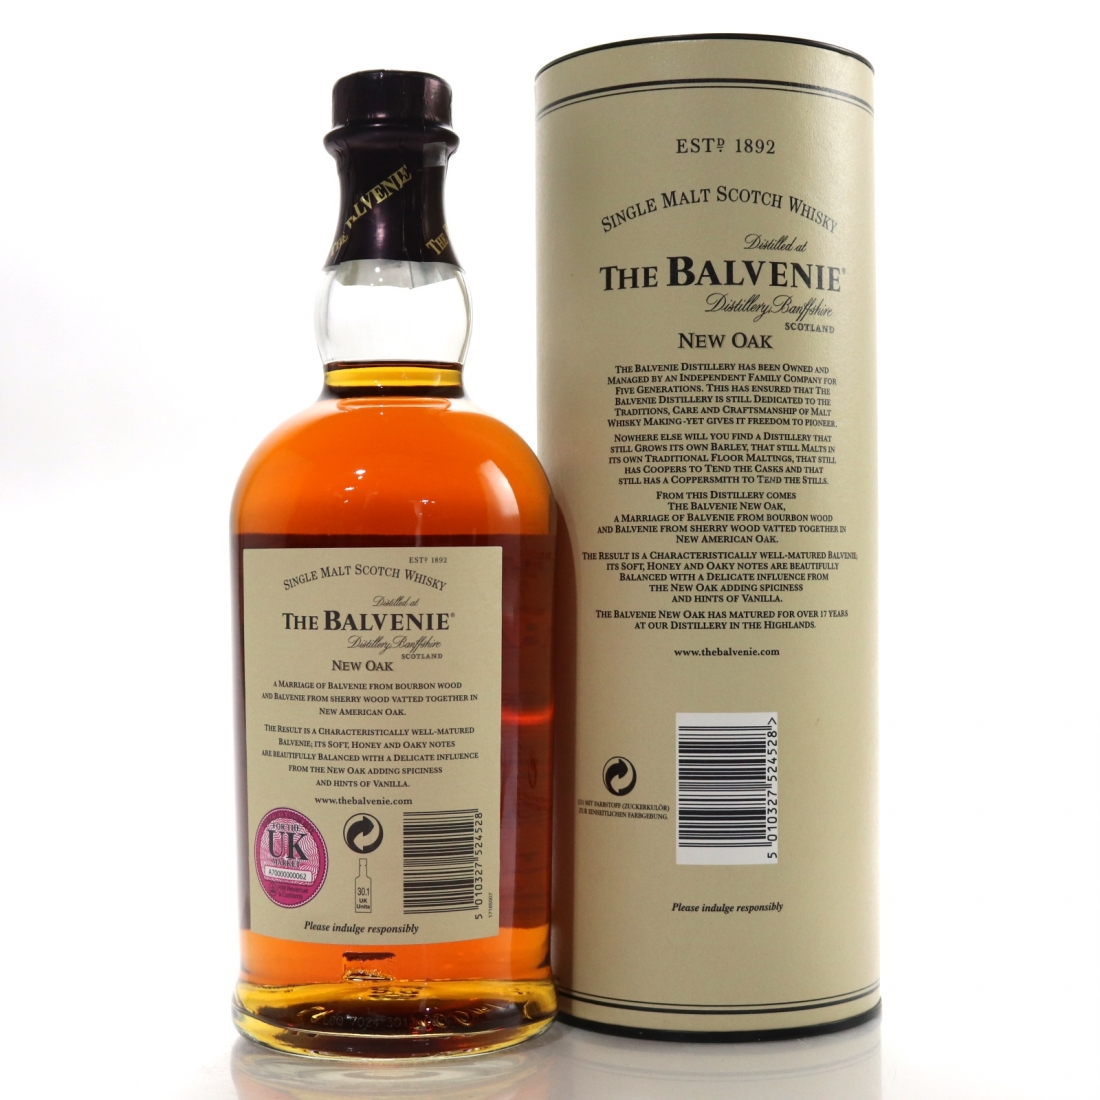 Balvenie 17 Year Old New Oak / First Bottling